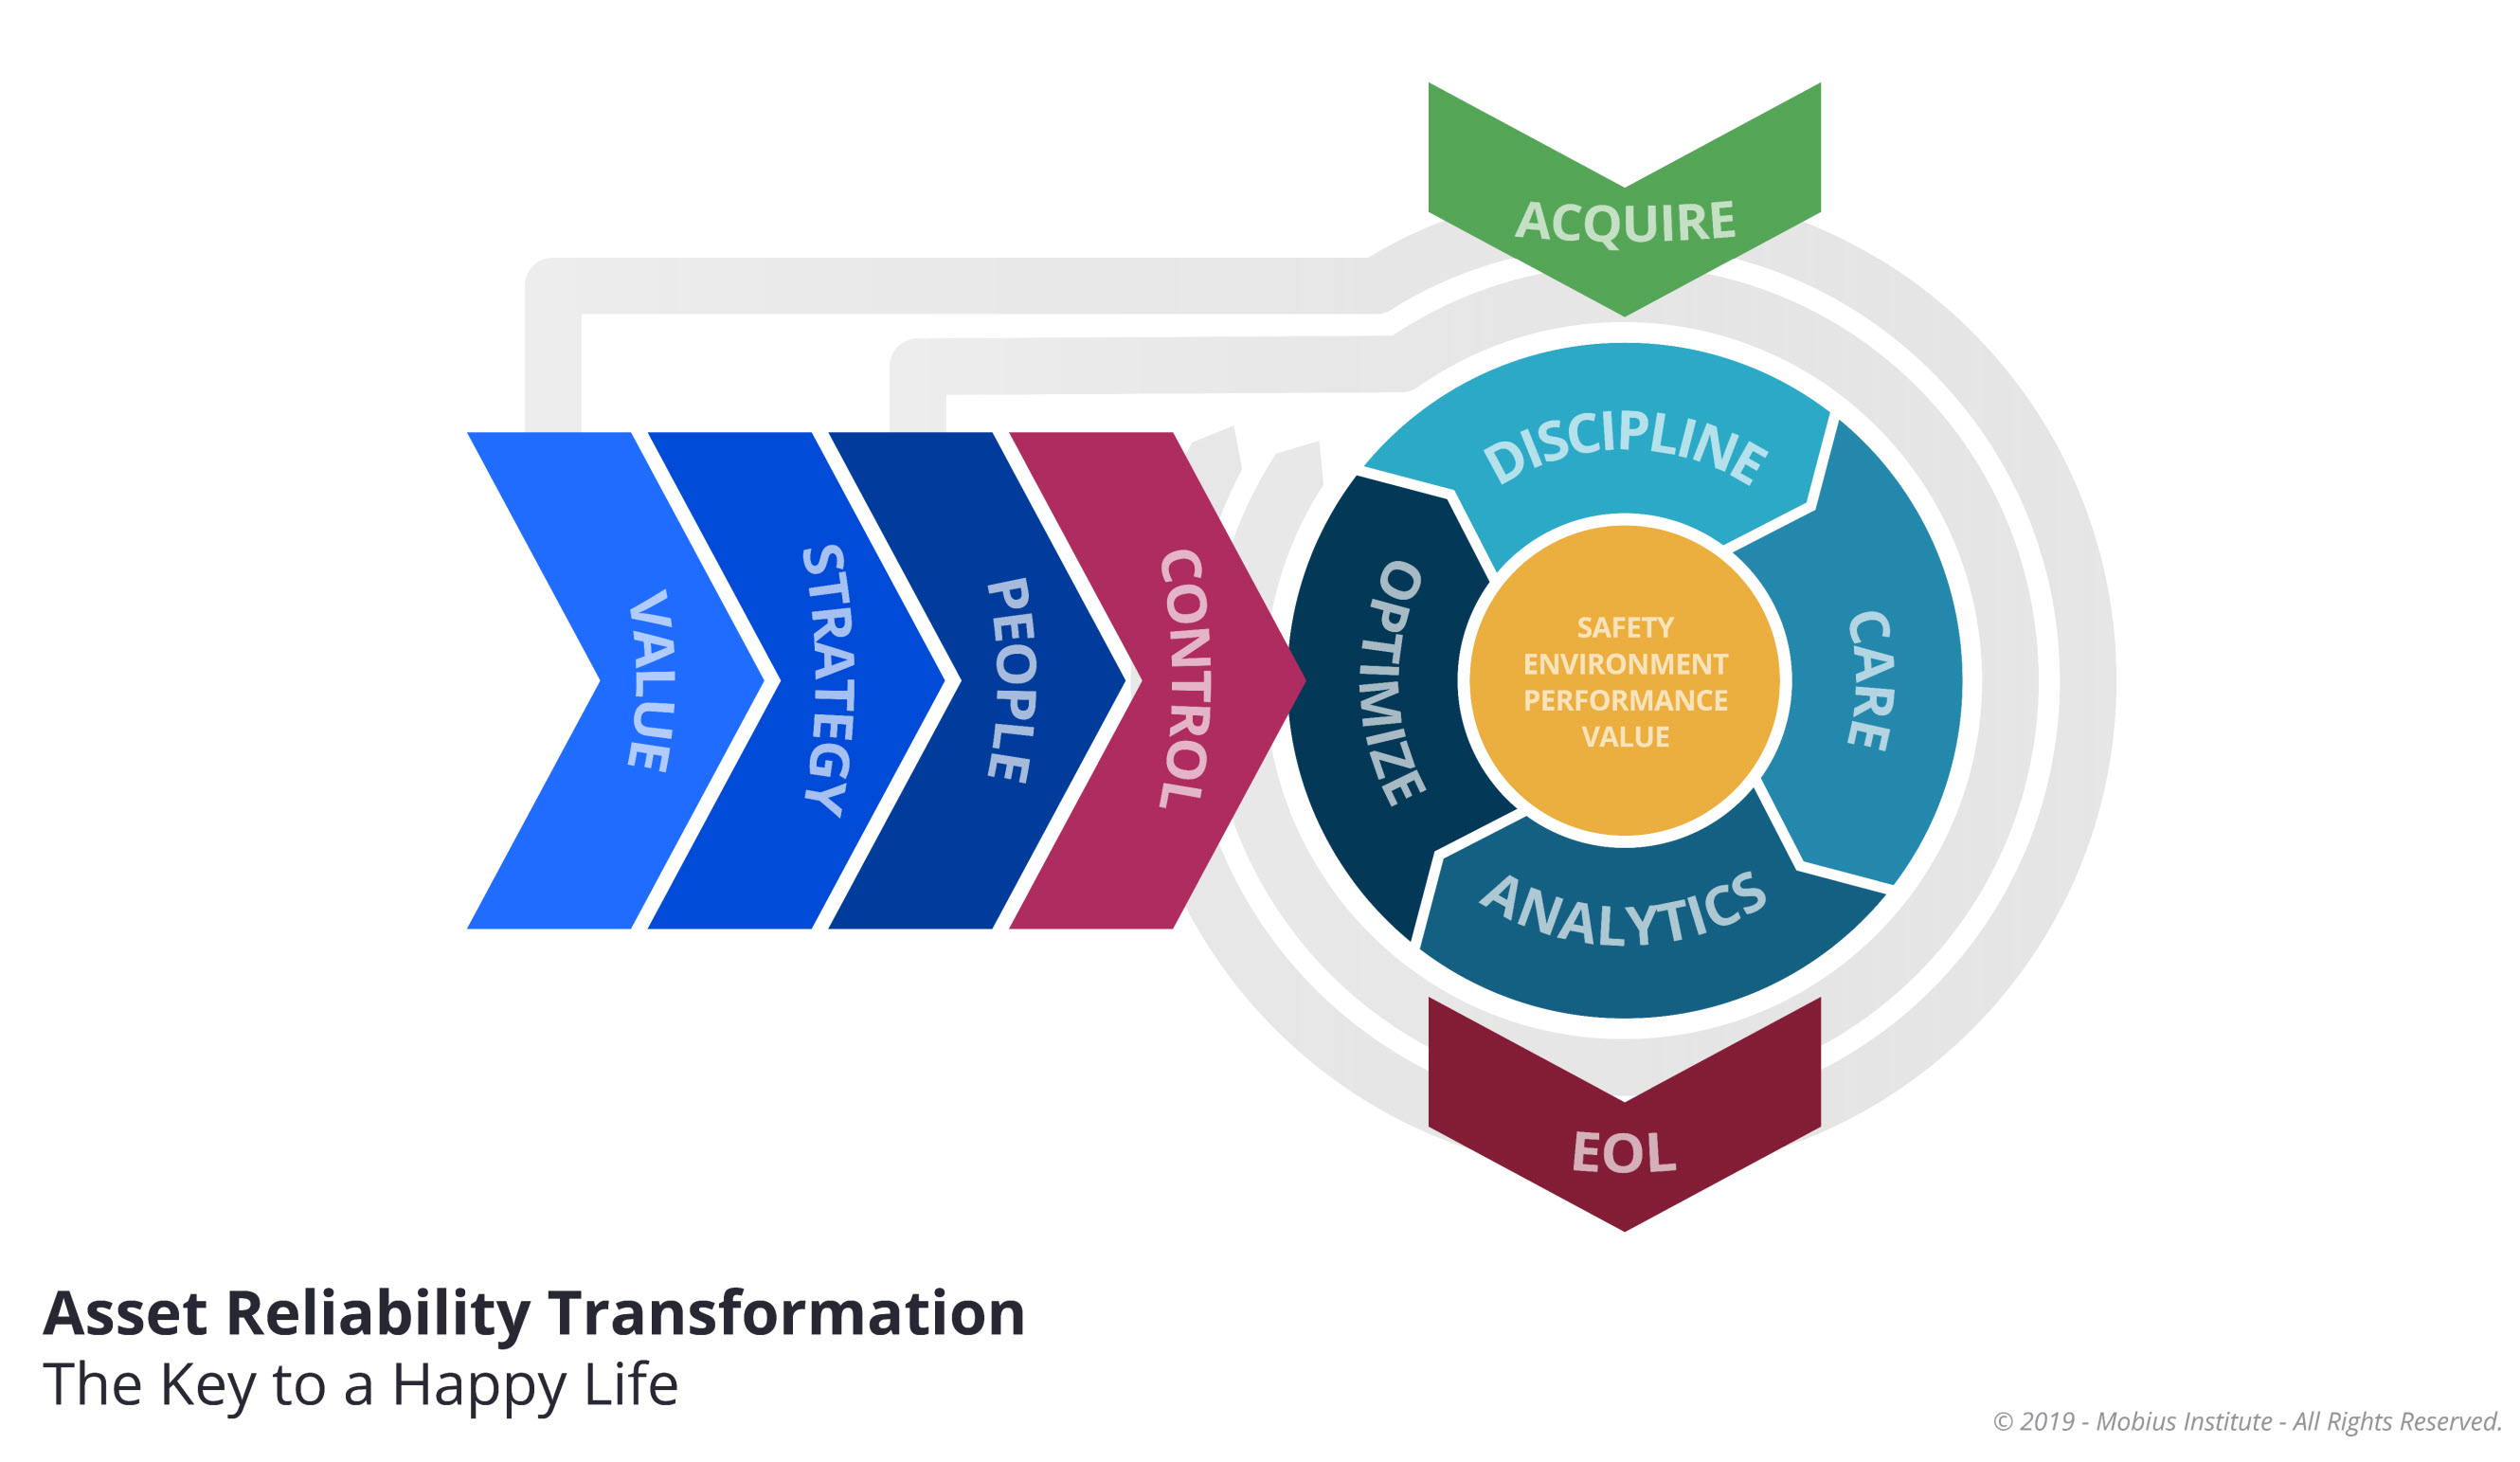 The Asset Reliability Transformation Process